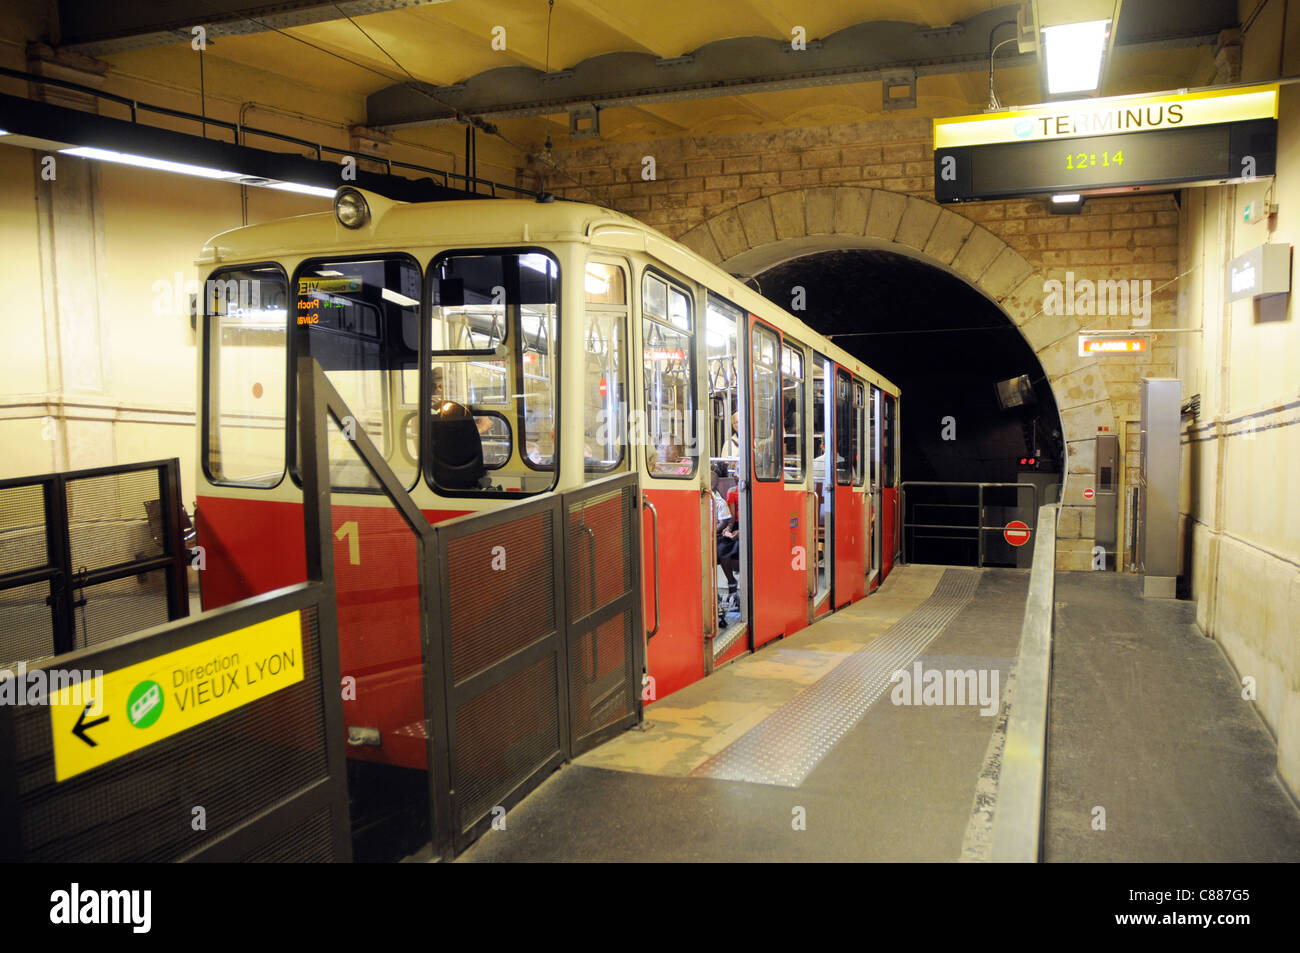 Vieux Lyon station of cable railway in Lyon city, France Stock Photo